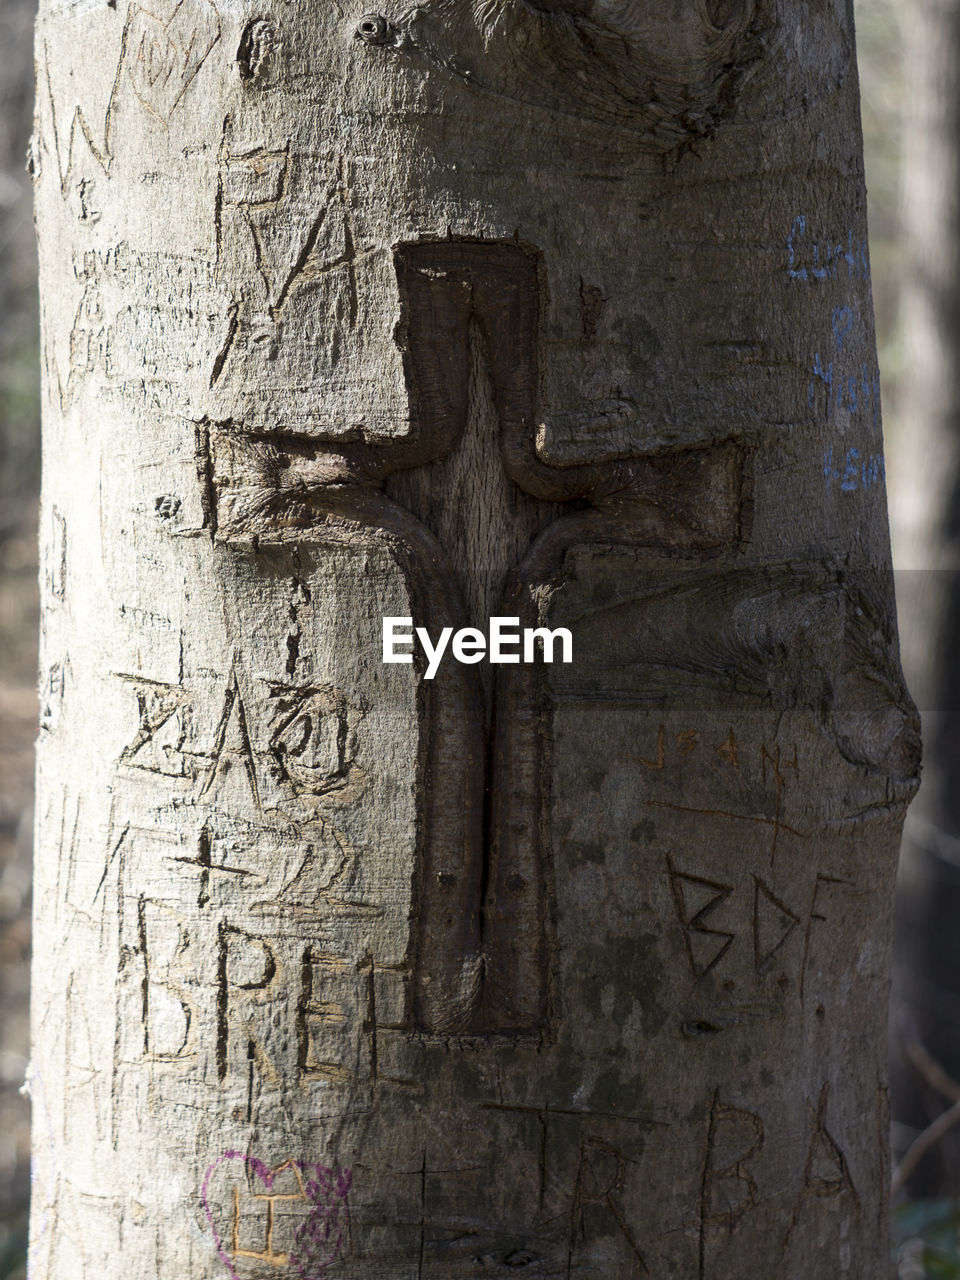 Close-Up Of Cross Carved On Tree Trunk